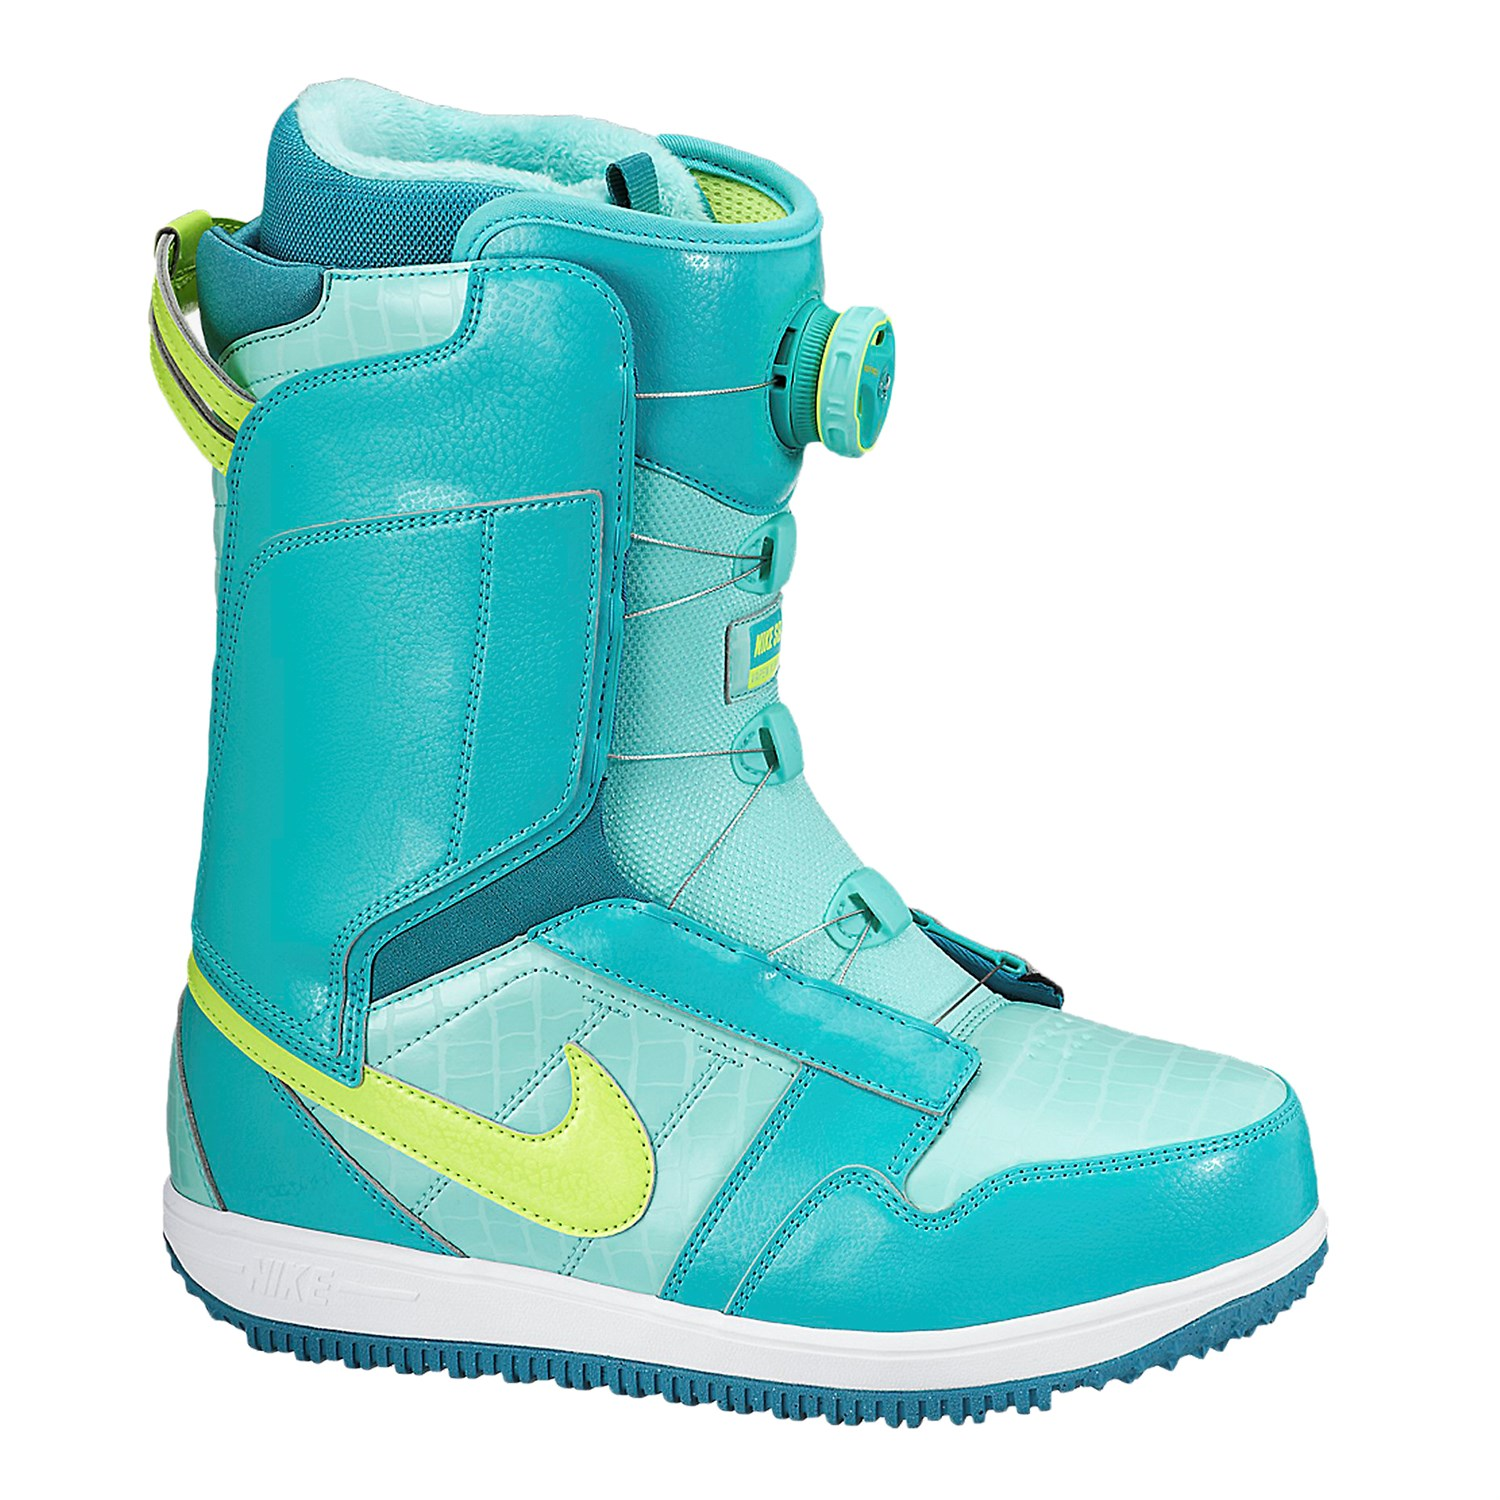 New Snowboard Boots Gt Nike Snowboard Boots Gt Womens Nike Snowboard Boots